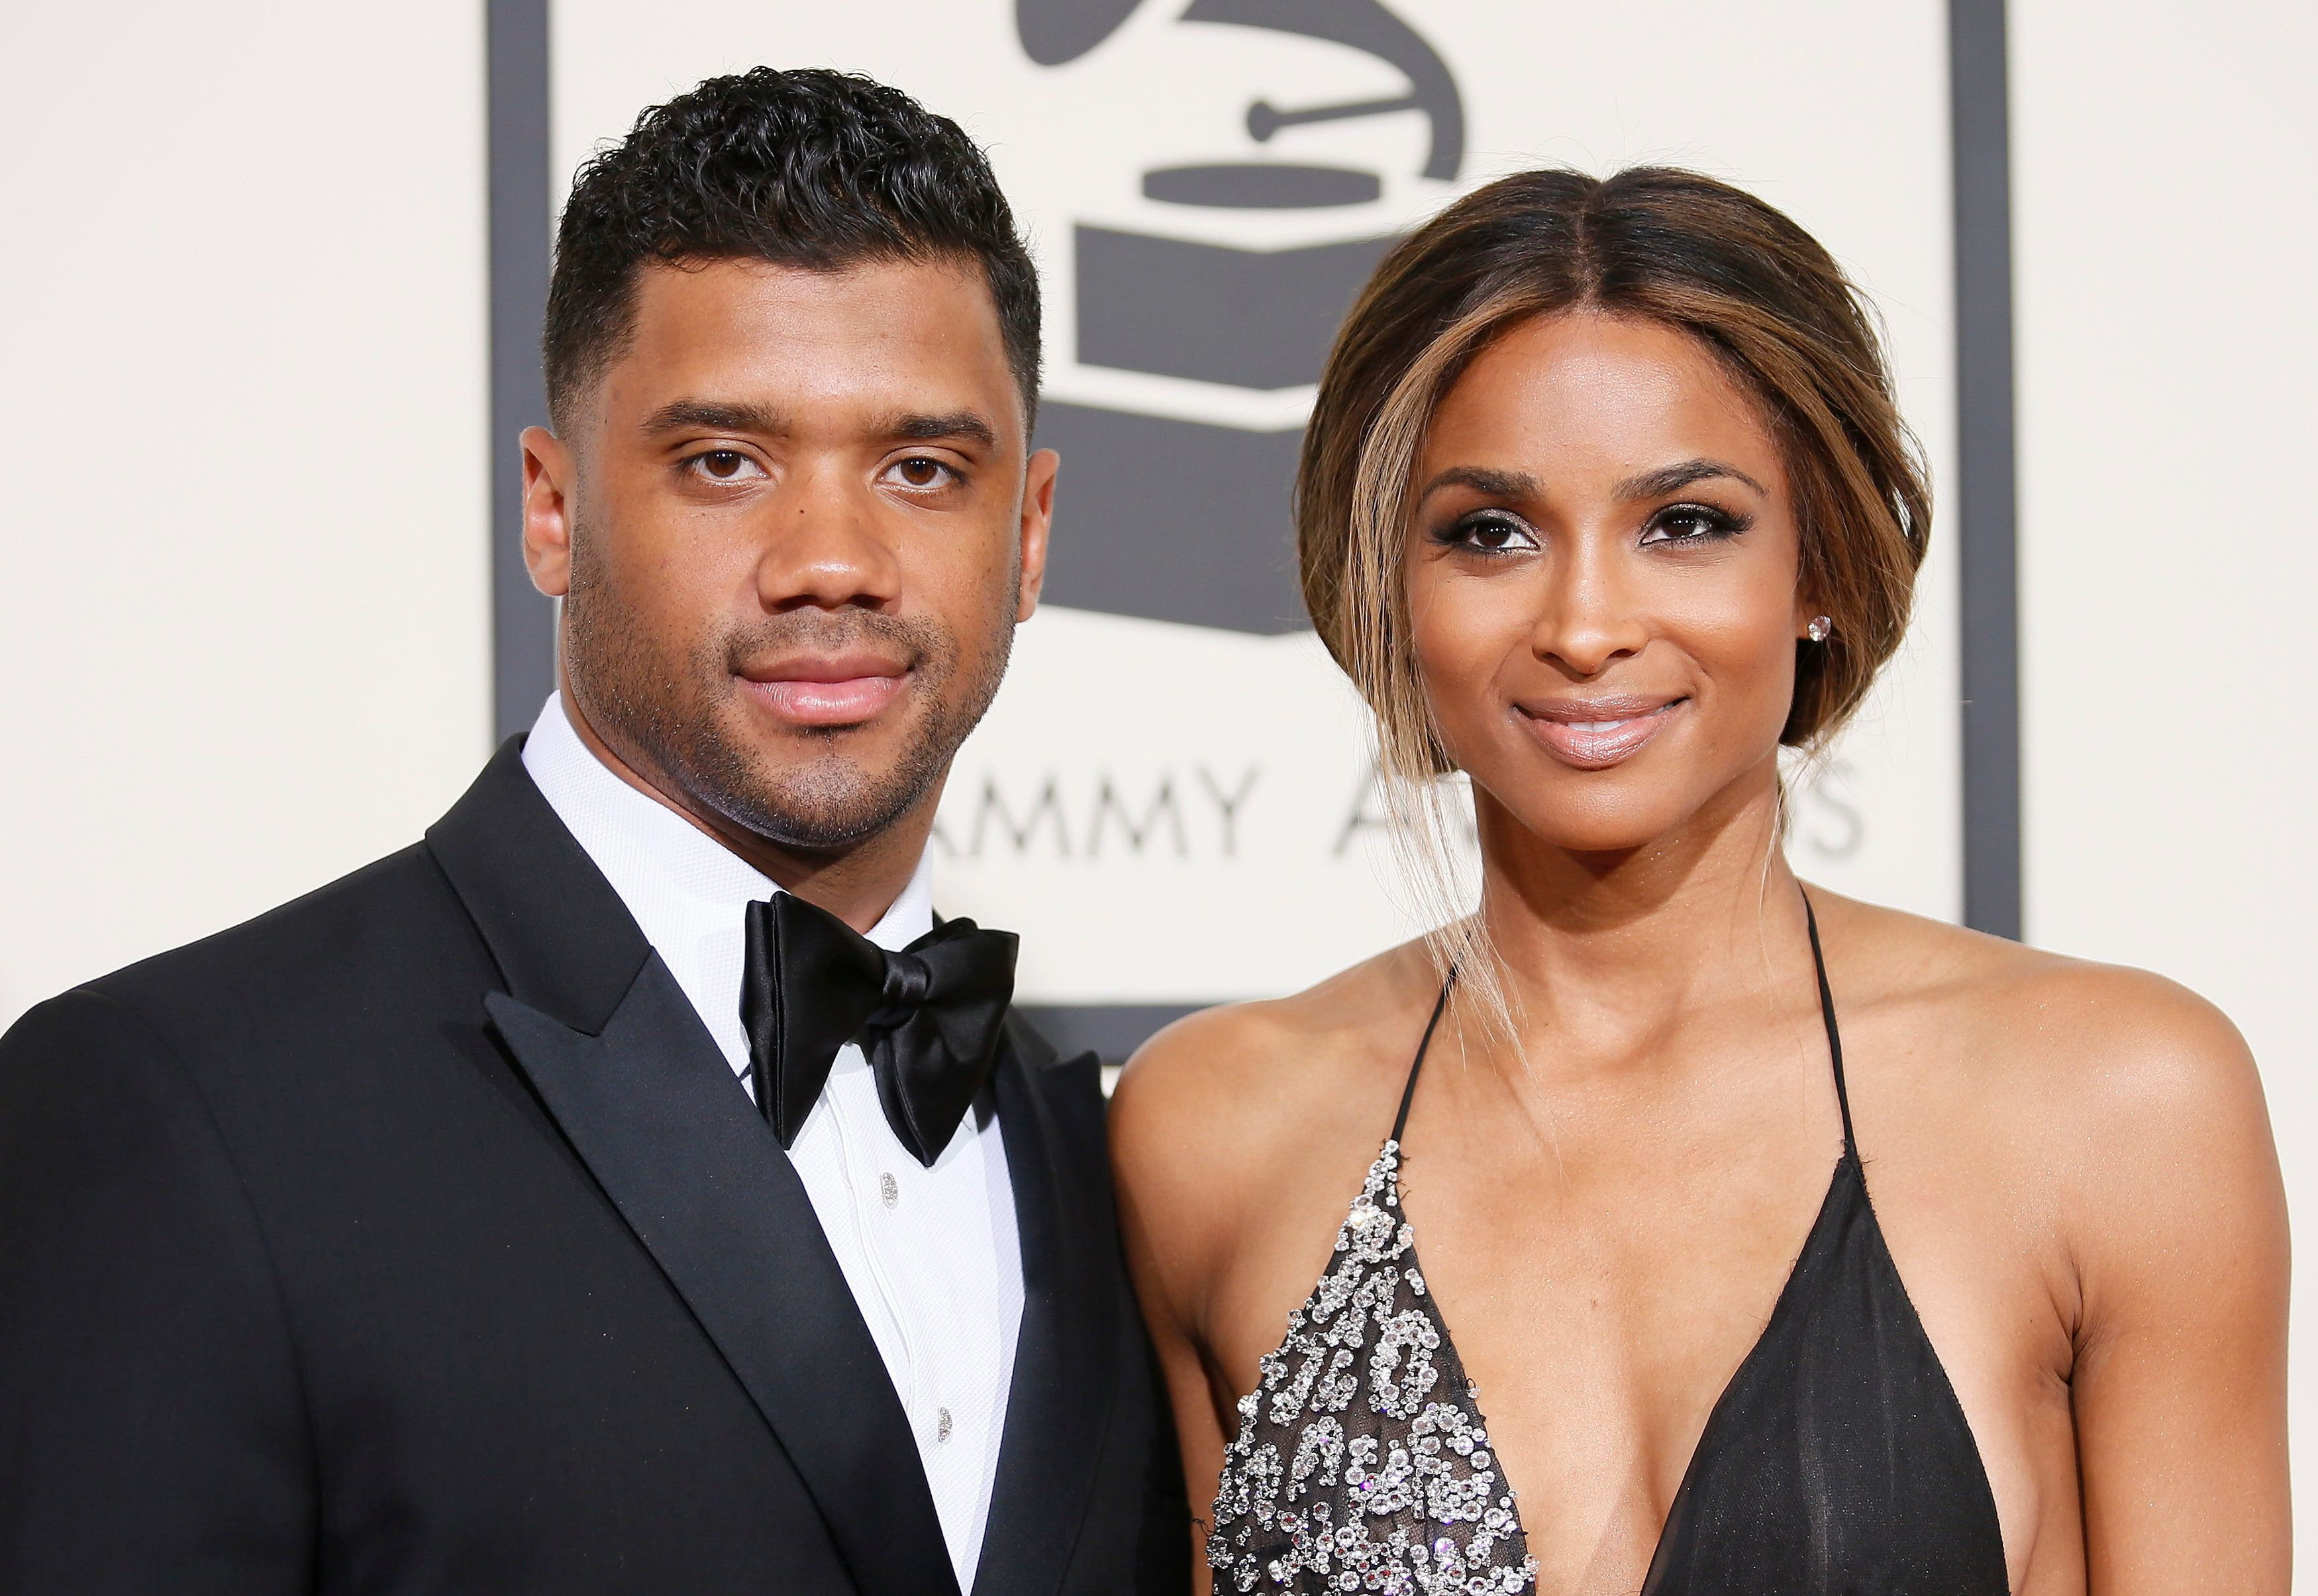 Who is russell wilson of the seattle seahawks dating nake